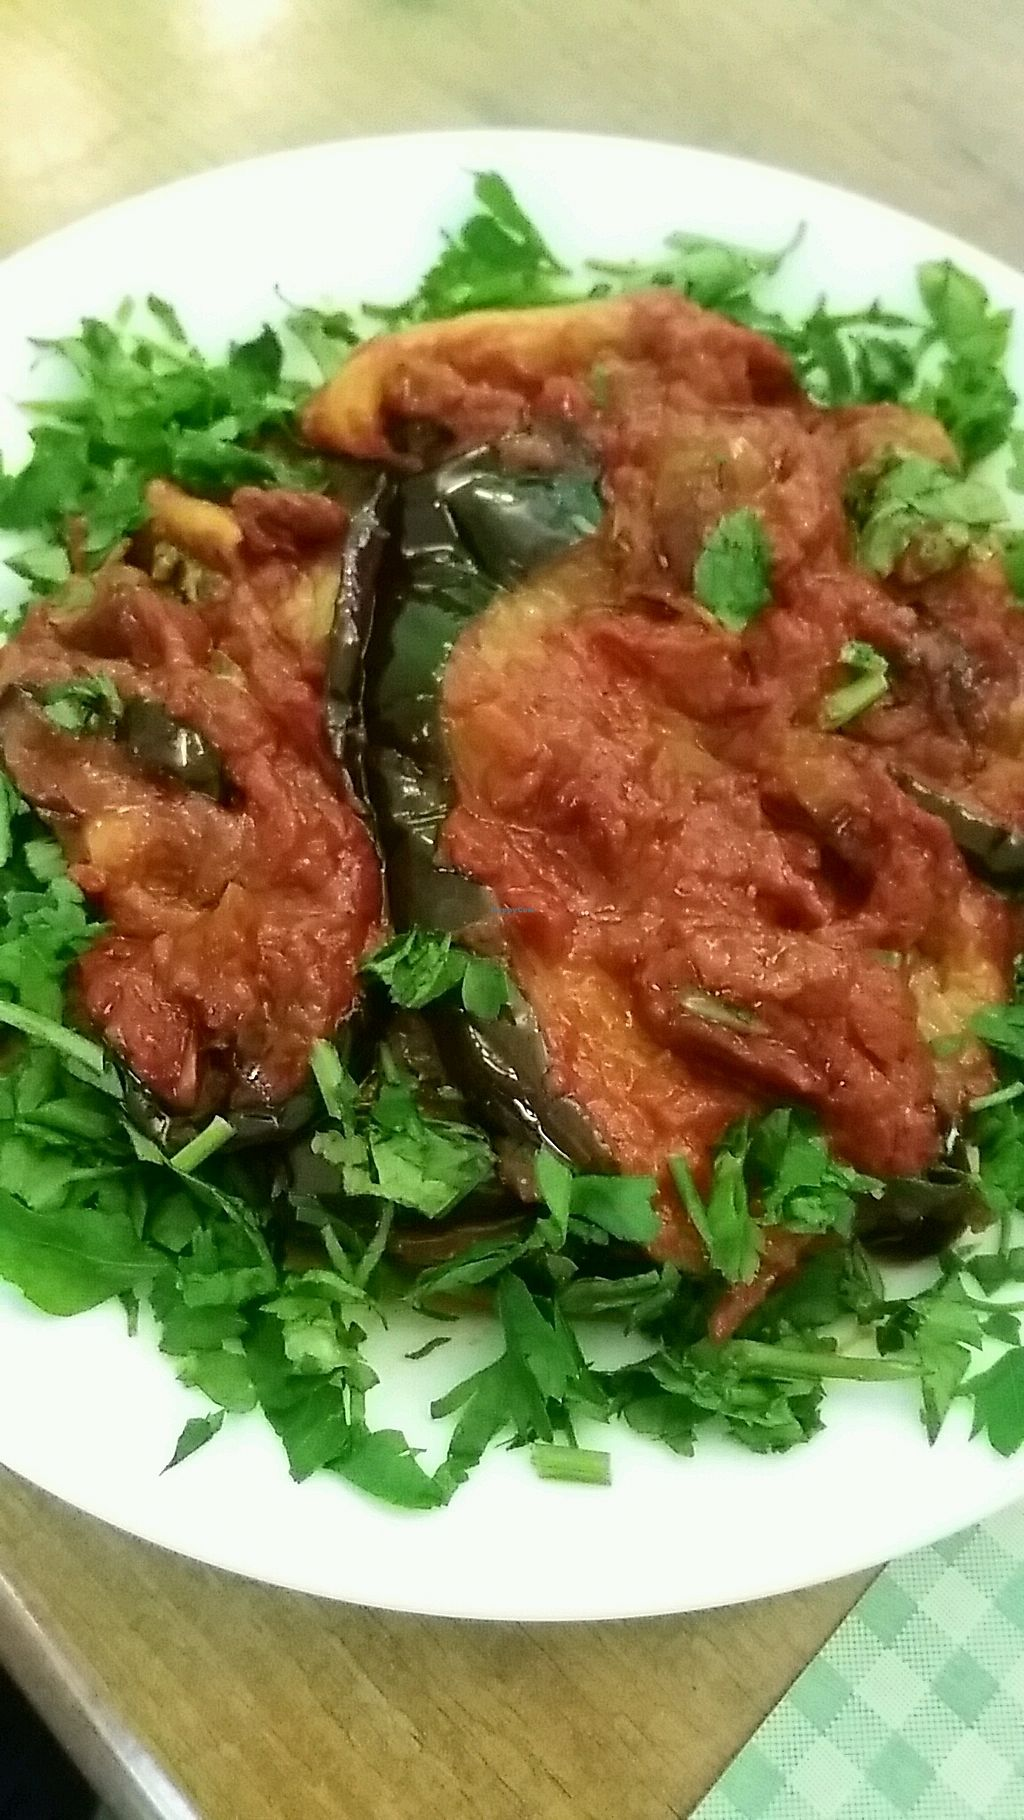 """Photo of VegeOrient  by <a href=""""/members/profile/Mia_Siufi"""">Mia_Siufi</a> <br/>Moussaka: for eggplant lovers! I also order the falafel sandwich to share (it's huge!) <br/> March 5, 2018  - <a href='/contact/abuse/image/61214/367124'>Report</a>"""